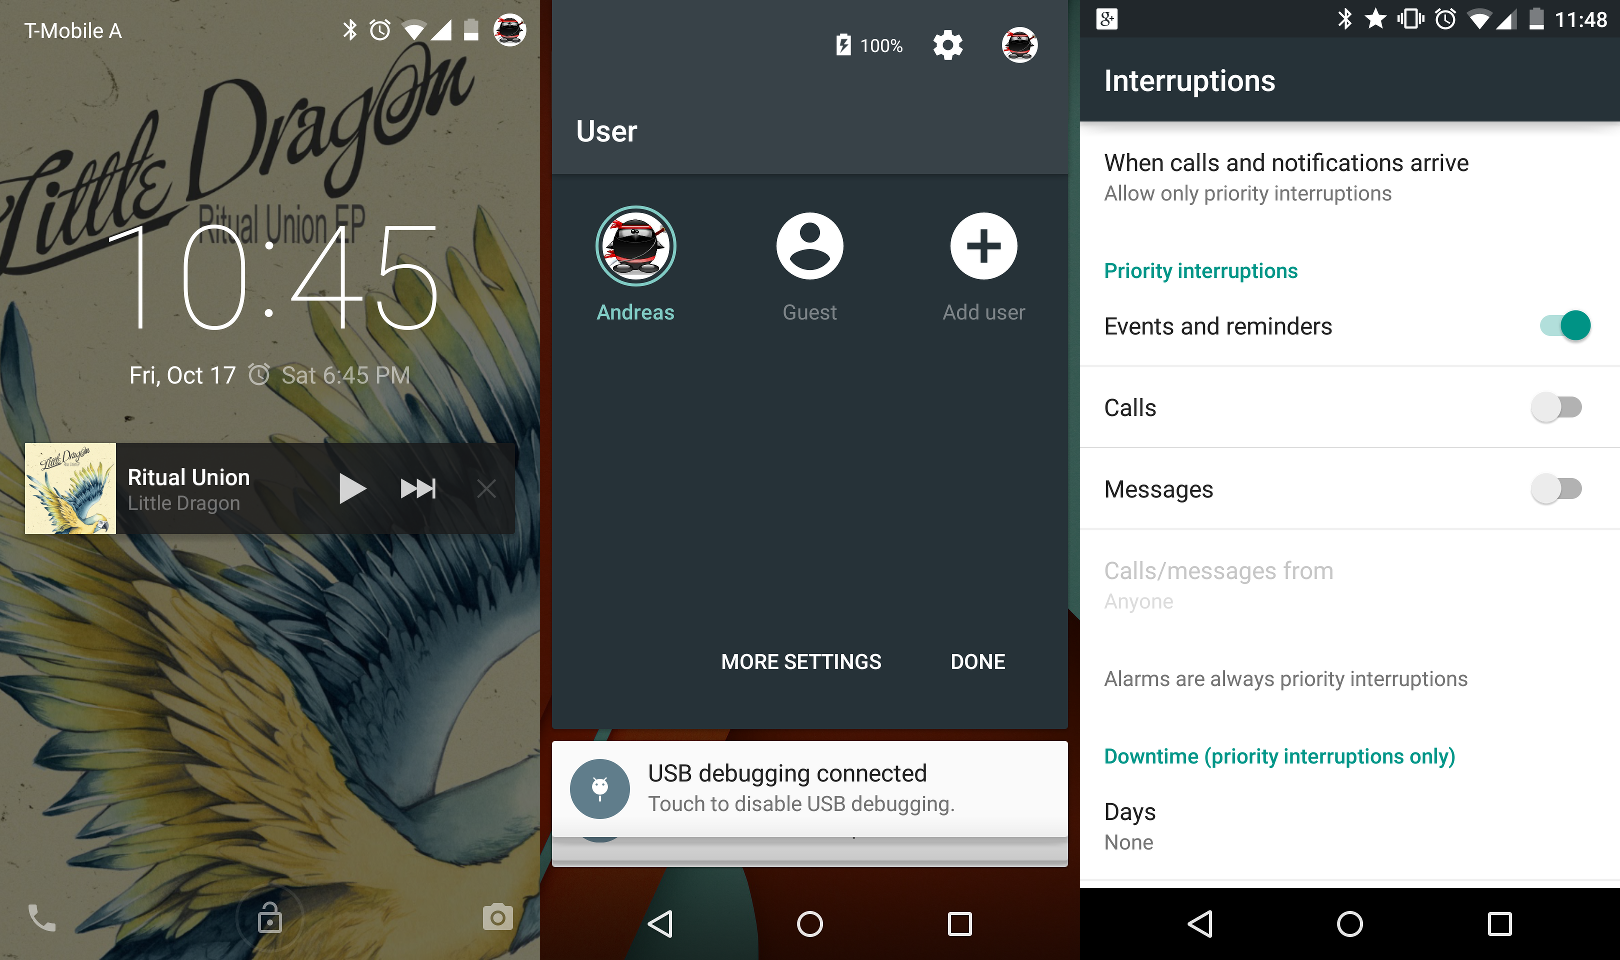 android-lollipop-5.0-android-L-Google-nexus-multi-user-guest